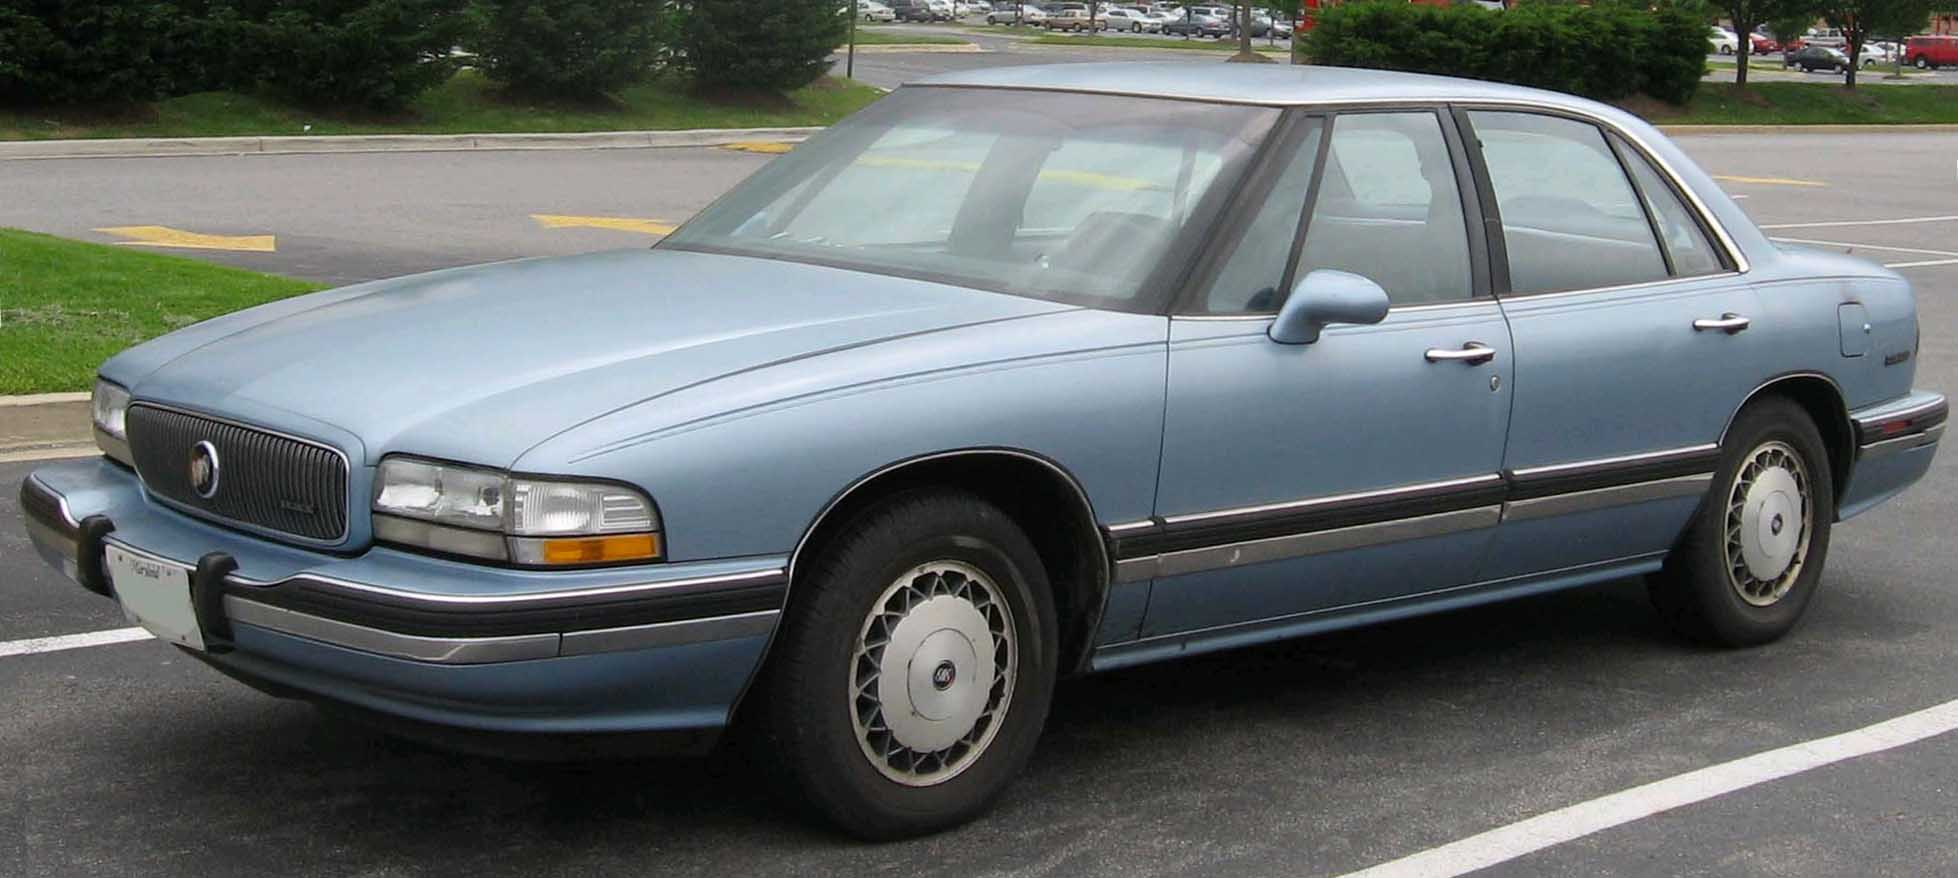 Amazing Buick LeSabre Pictures & Backgrounds